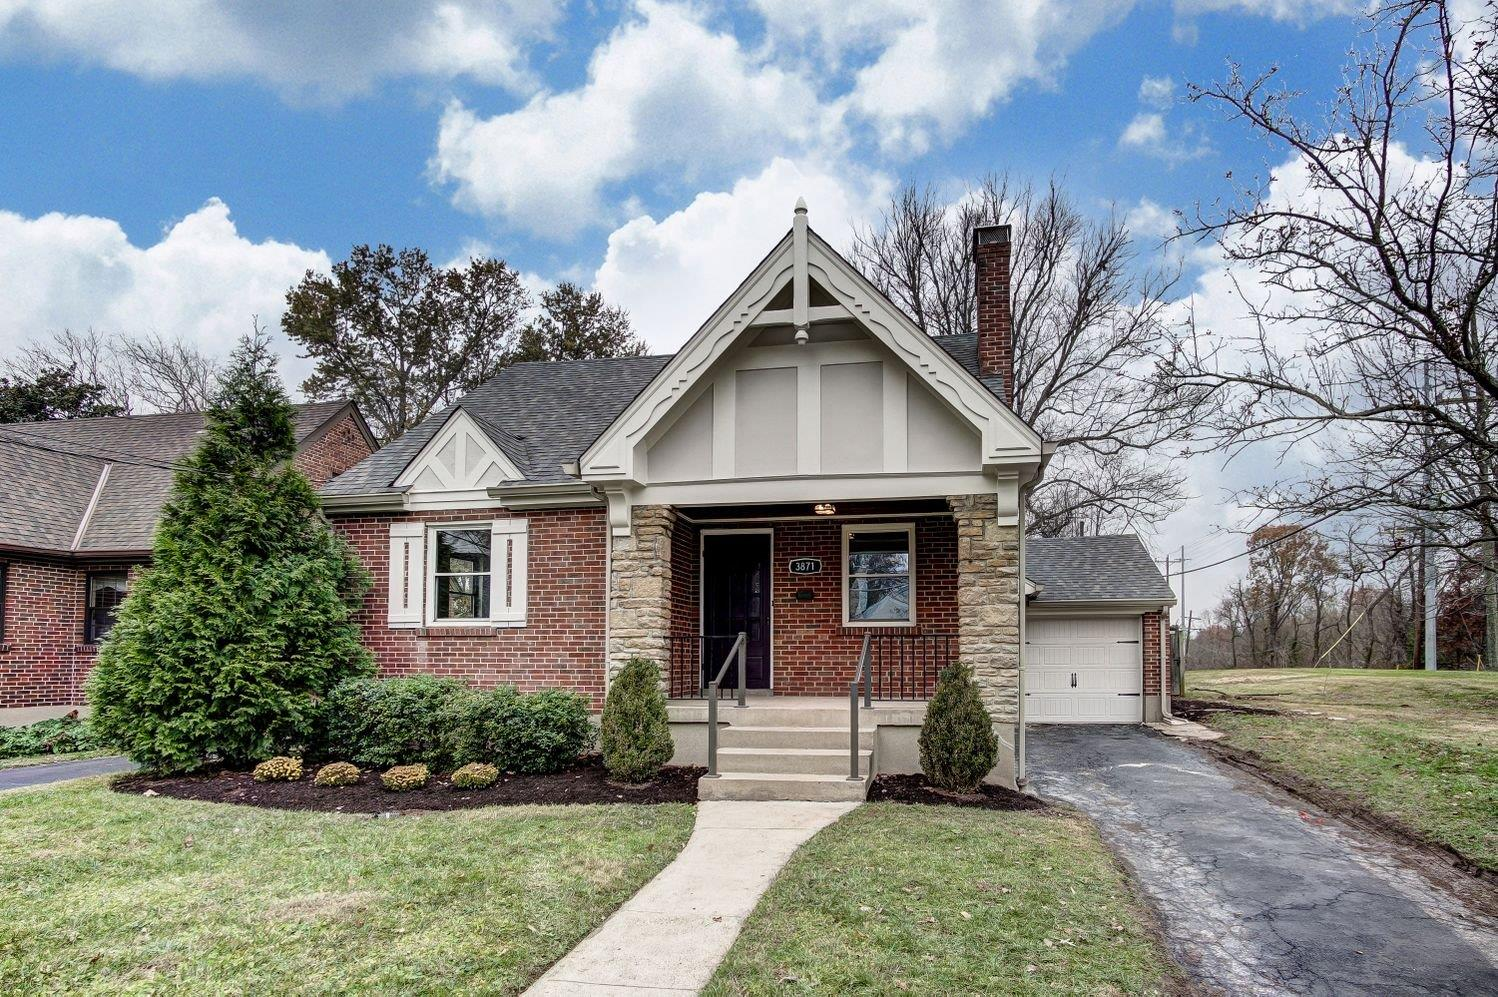 Property for sale at 3871 Settle Road, Mariemont,  OH 45227